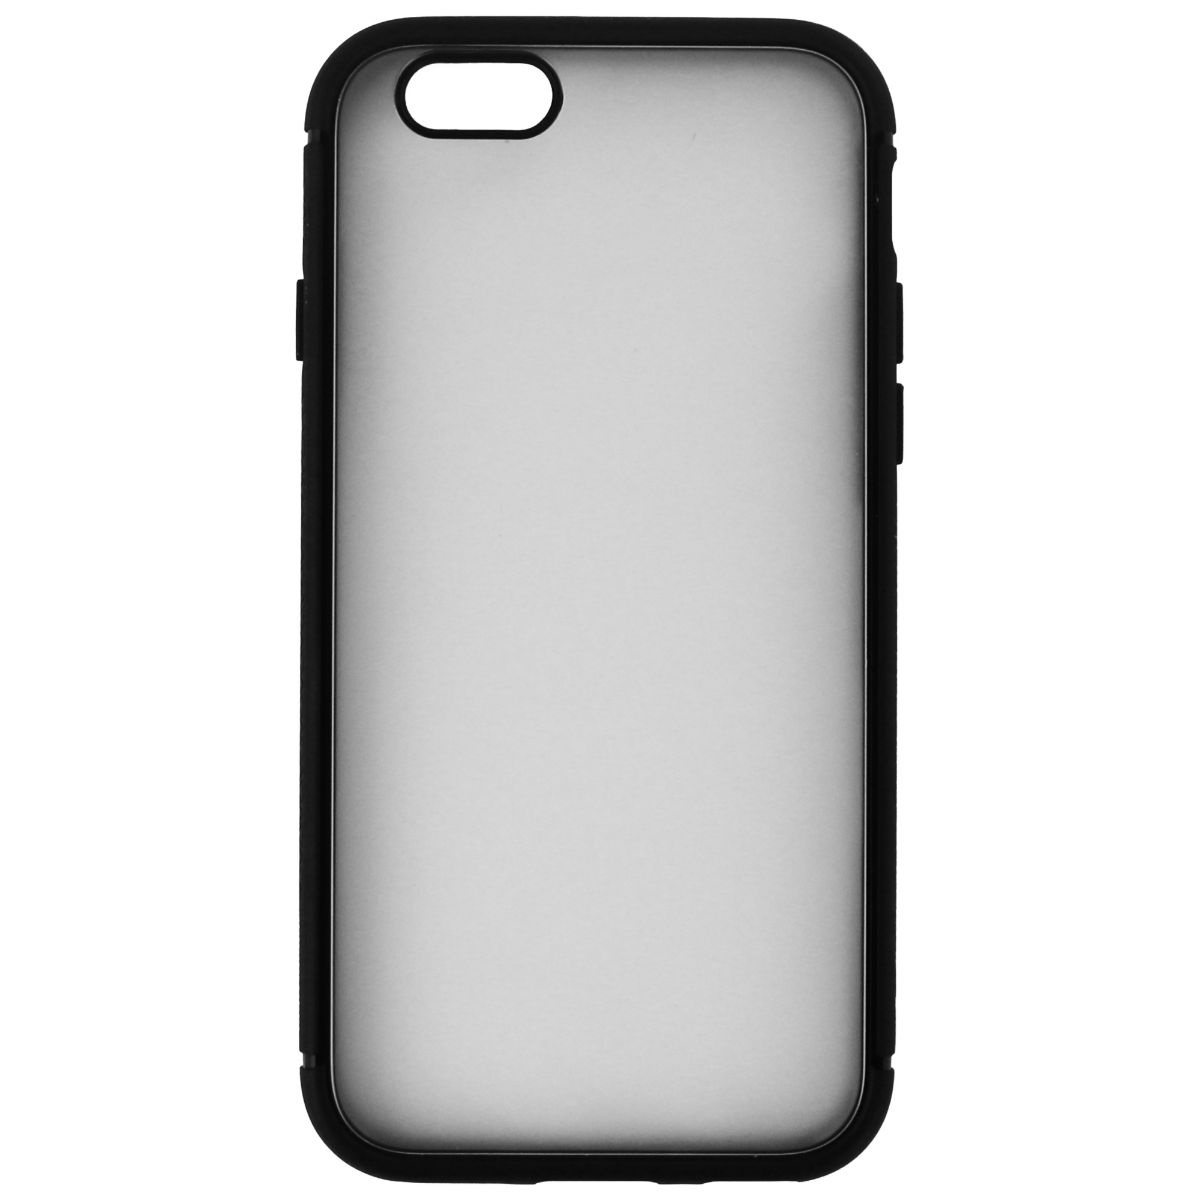 reputable site 17980 01e72 BodyGuardz Contact Series Hybrid Case for iPhone 6 / 6s - Frosted ...